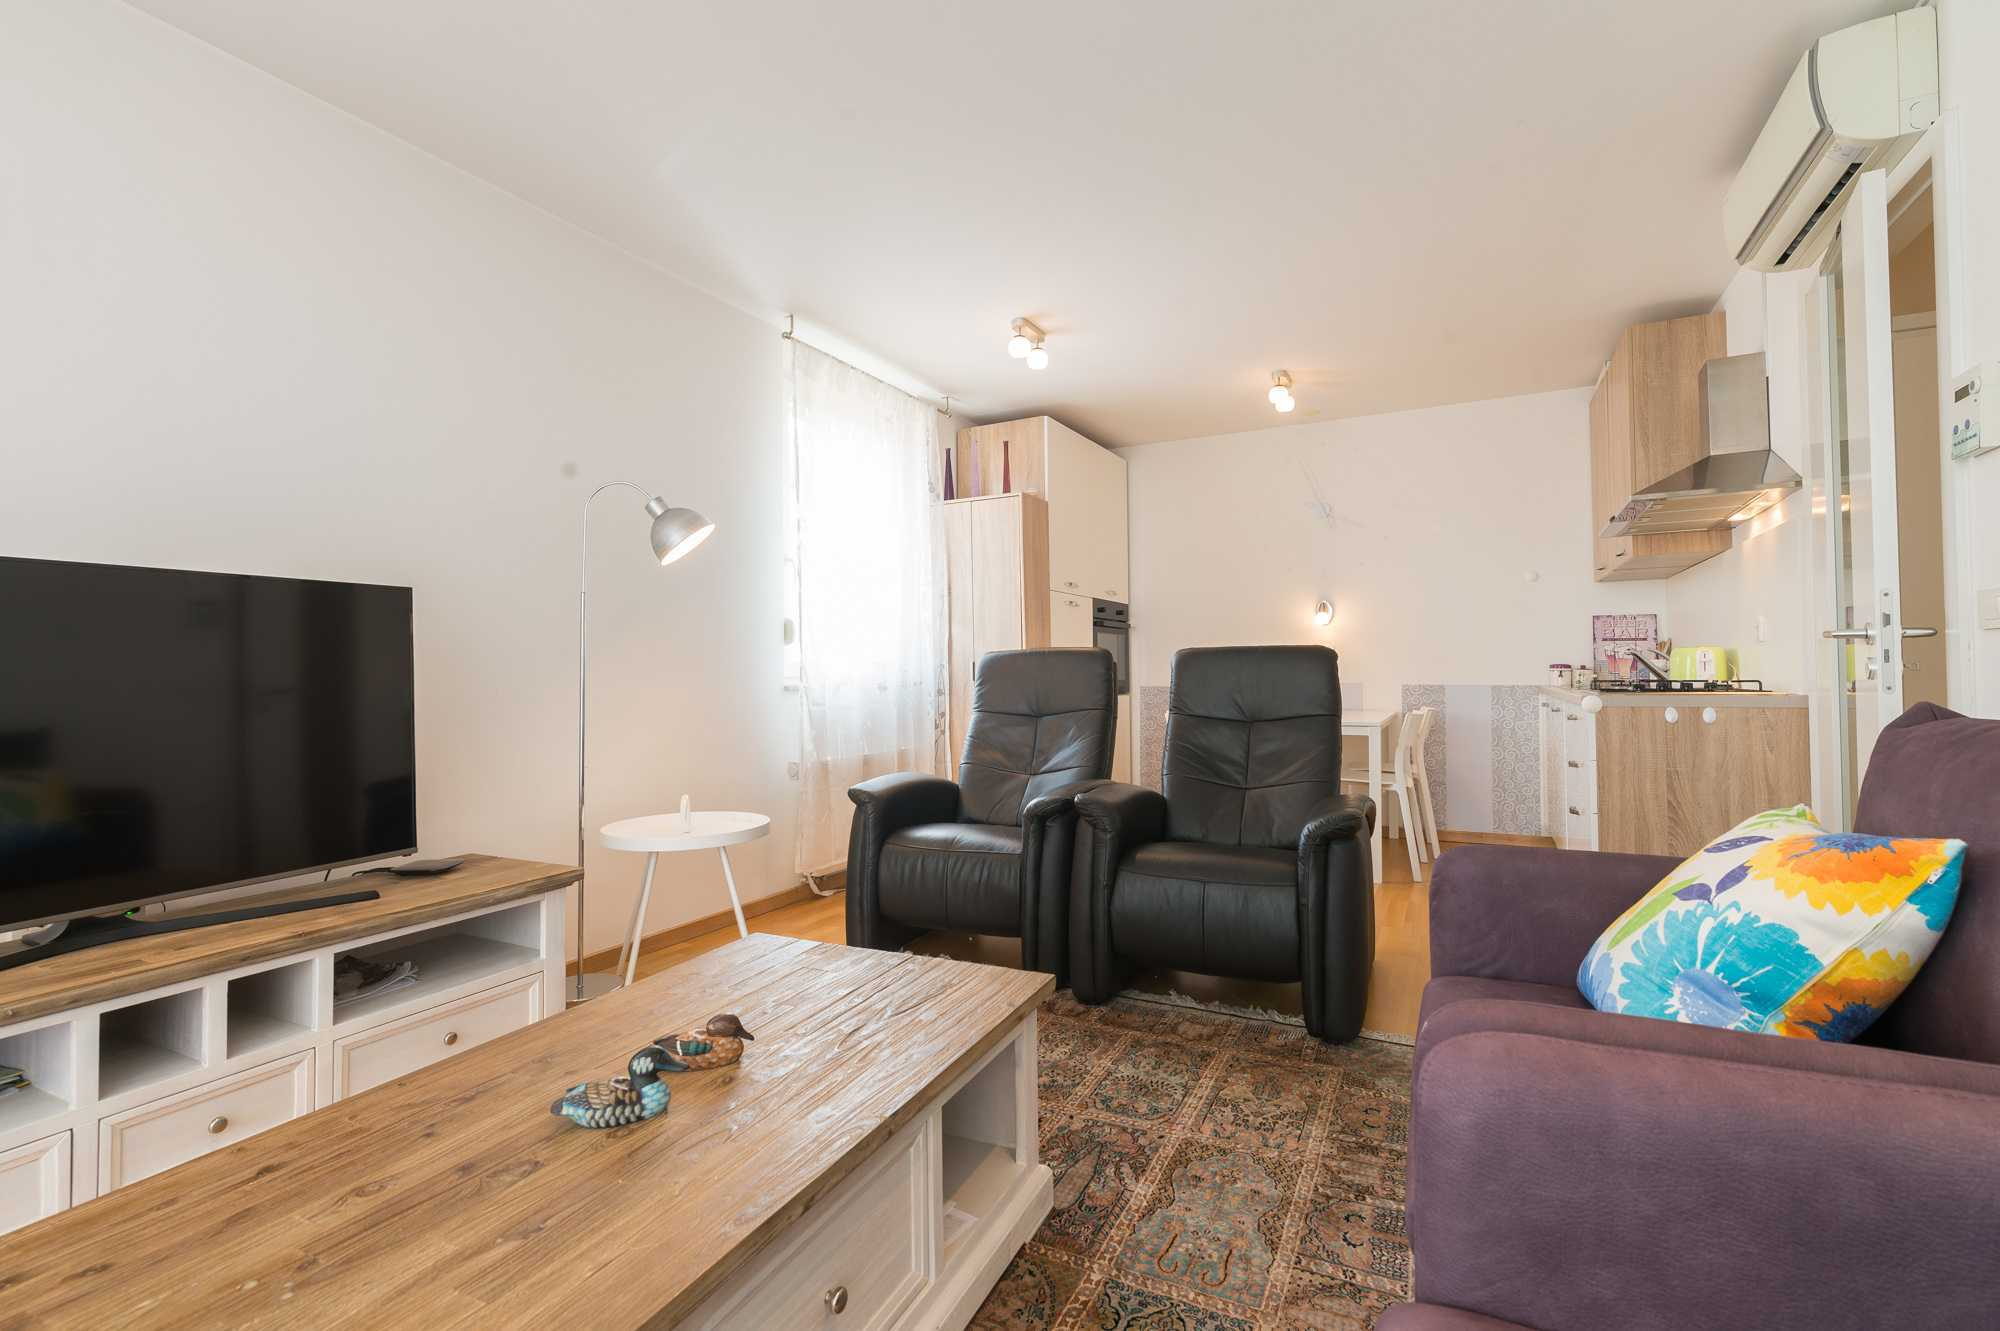 The apartment features a TV and comfortable seating around a Persian rug.